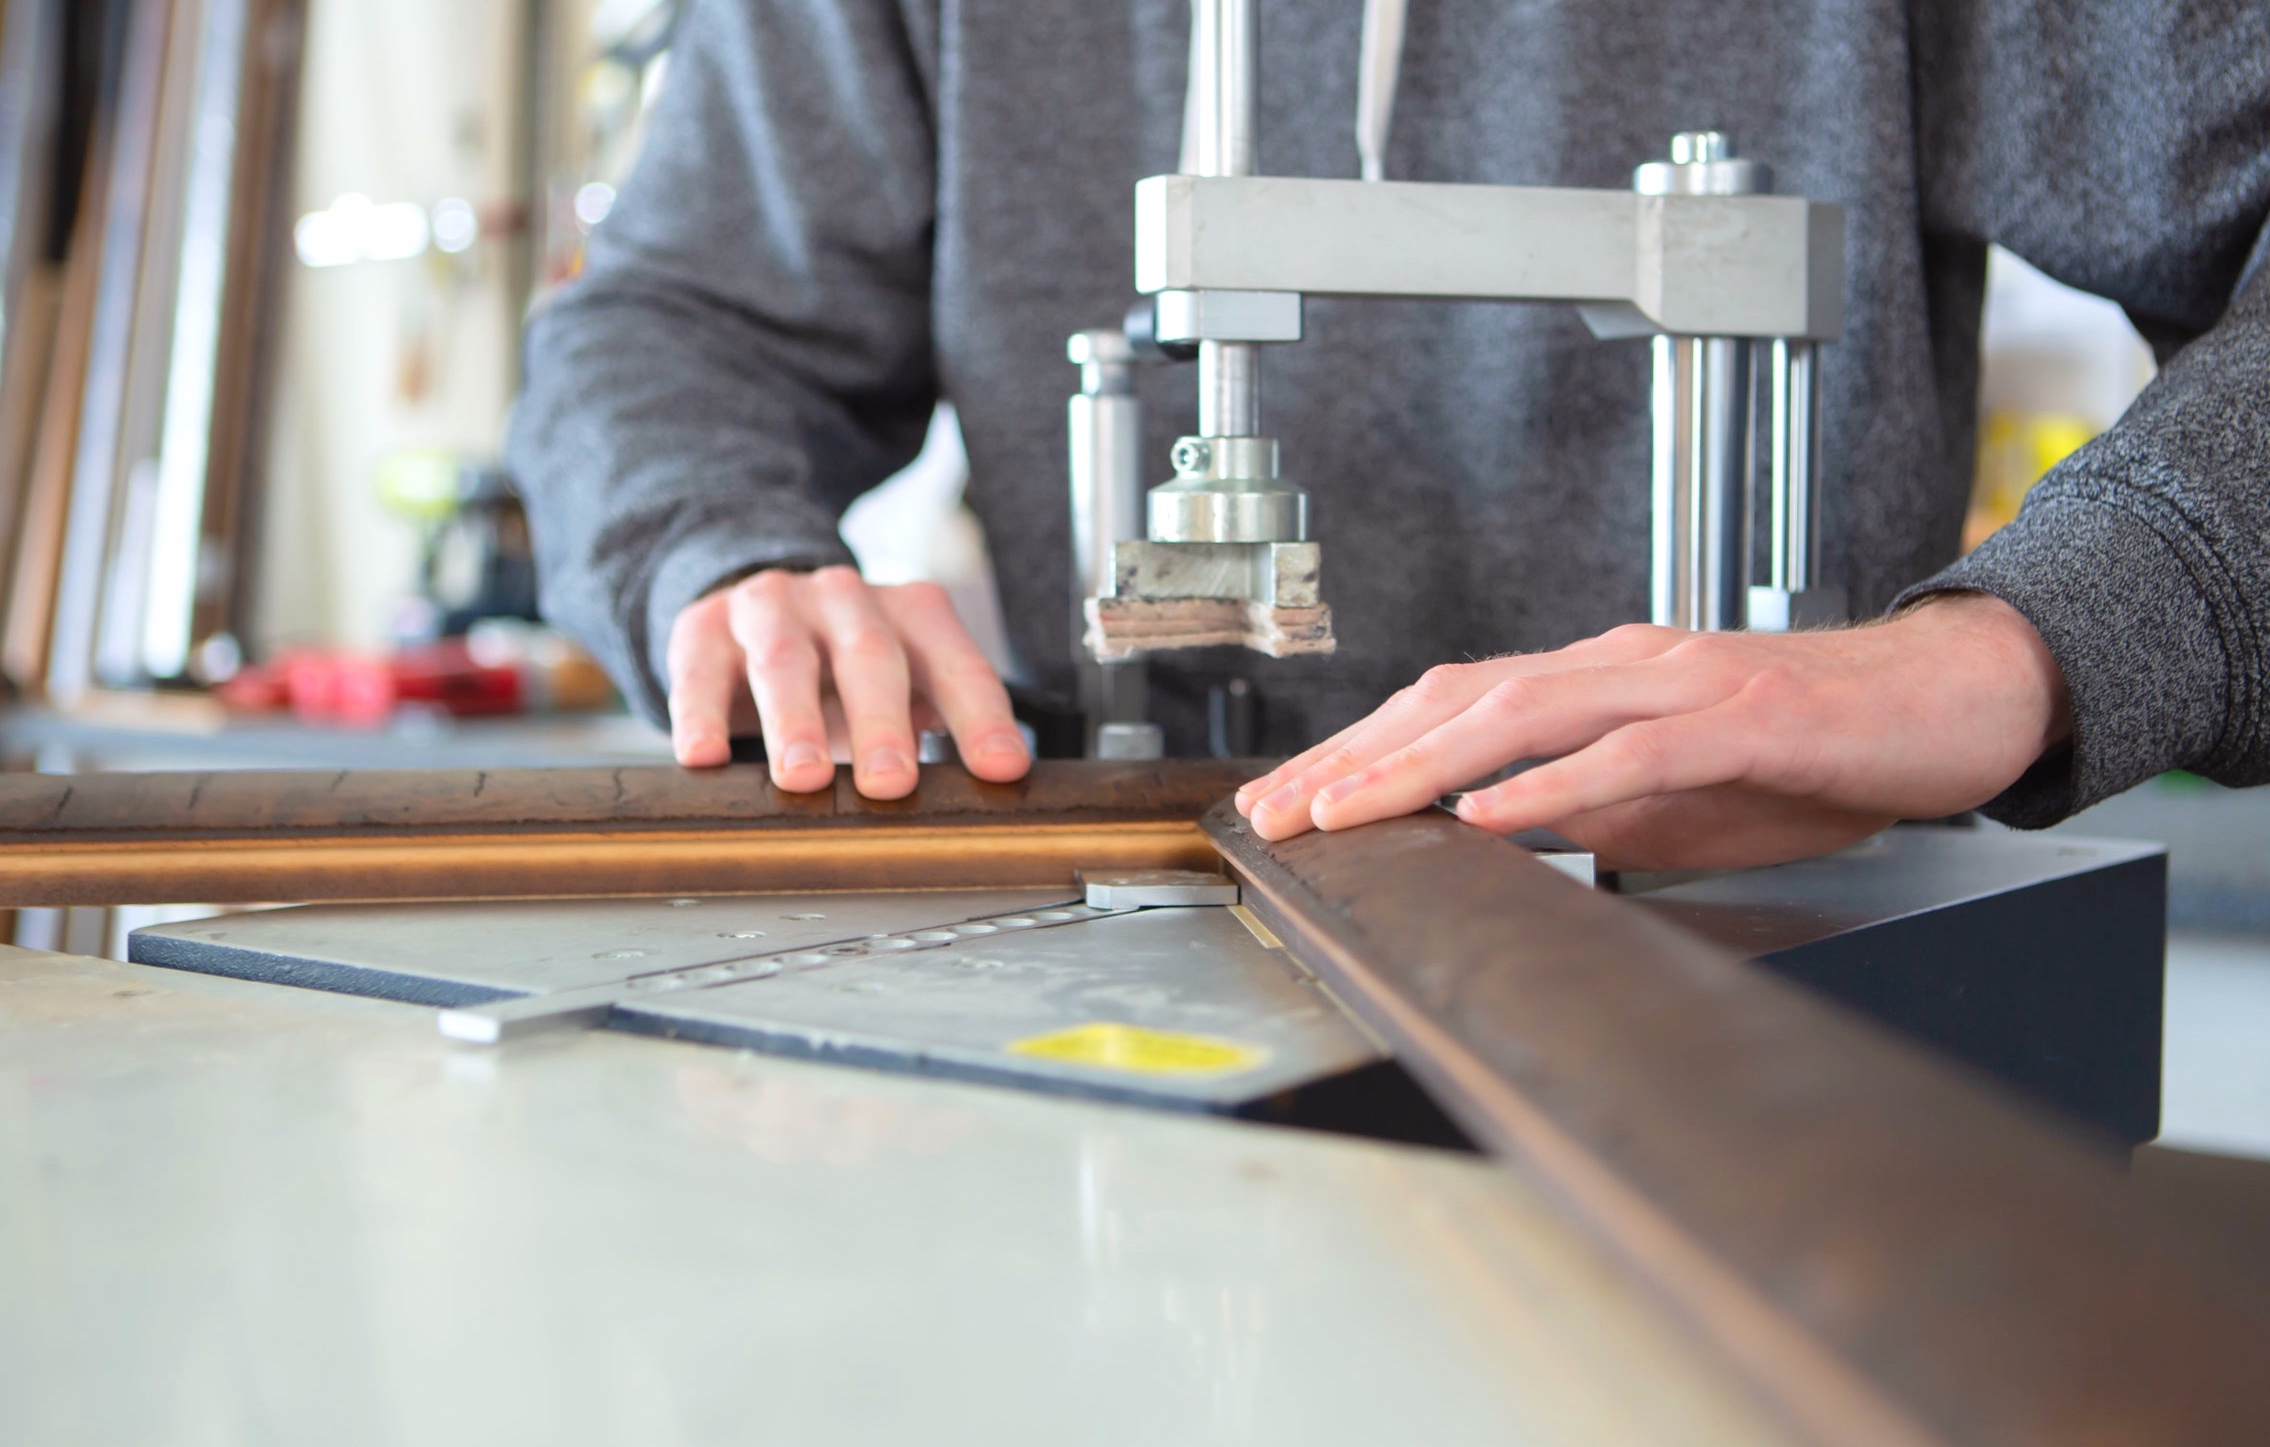 meticulous construction - To ensure solid stable construction we assess the specs of each moulding and join the frames with either an under-pinning method or our state-of-the-art Hoffman machine.